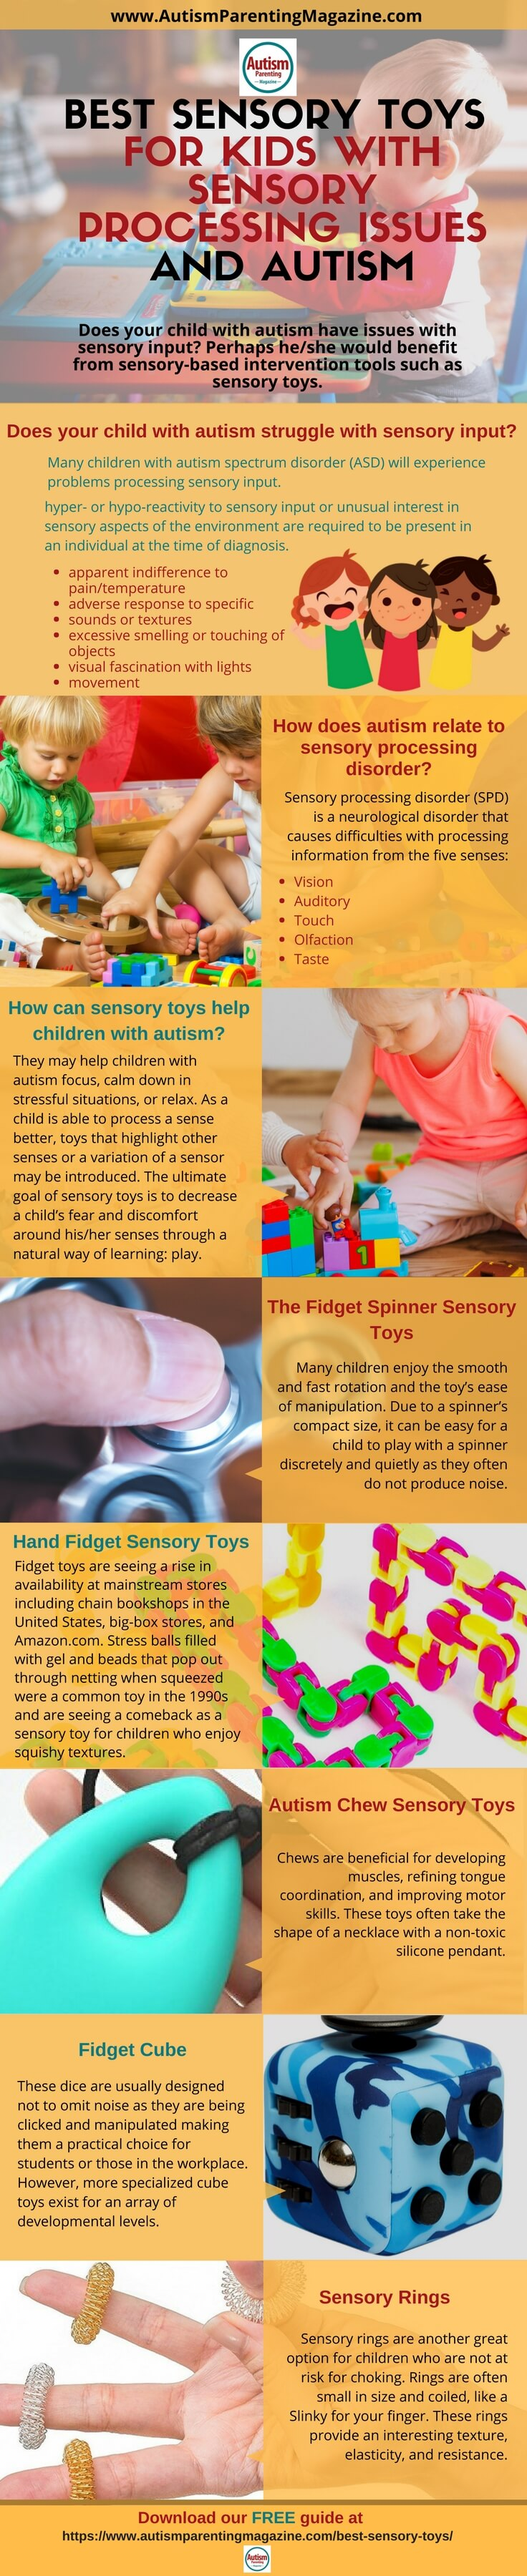 Download our Free Guide - Best Sensory Toys for Kids with Sensory Processing Issues and Autism https://www.autismparentingmagazine.com/best-sensory-toys/